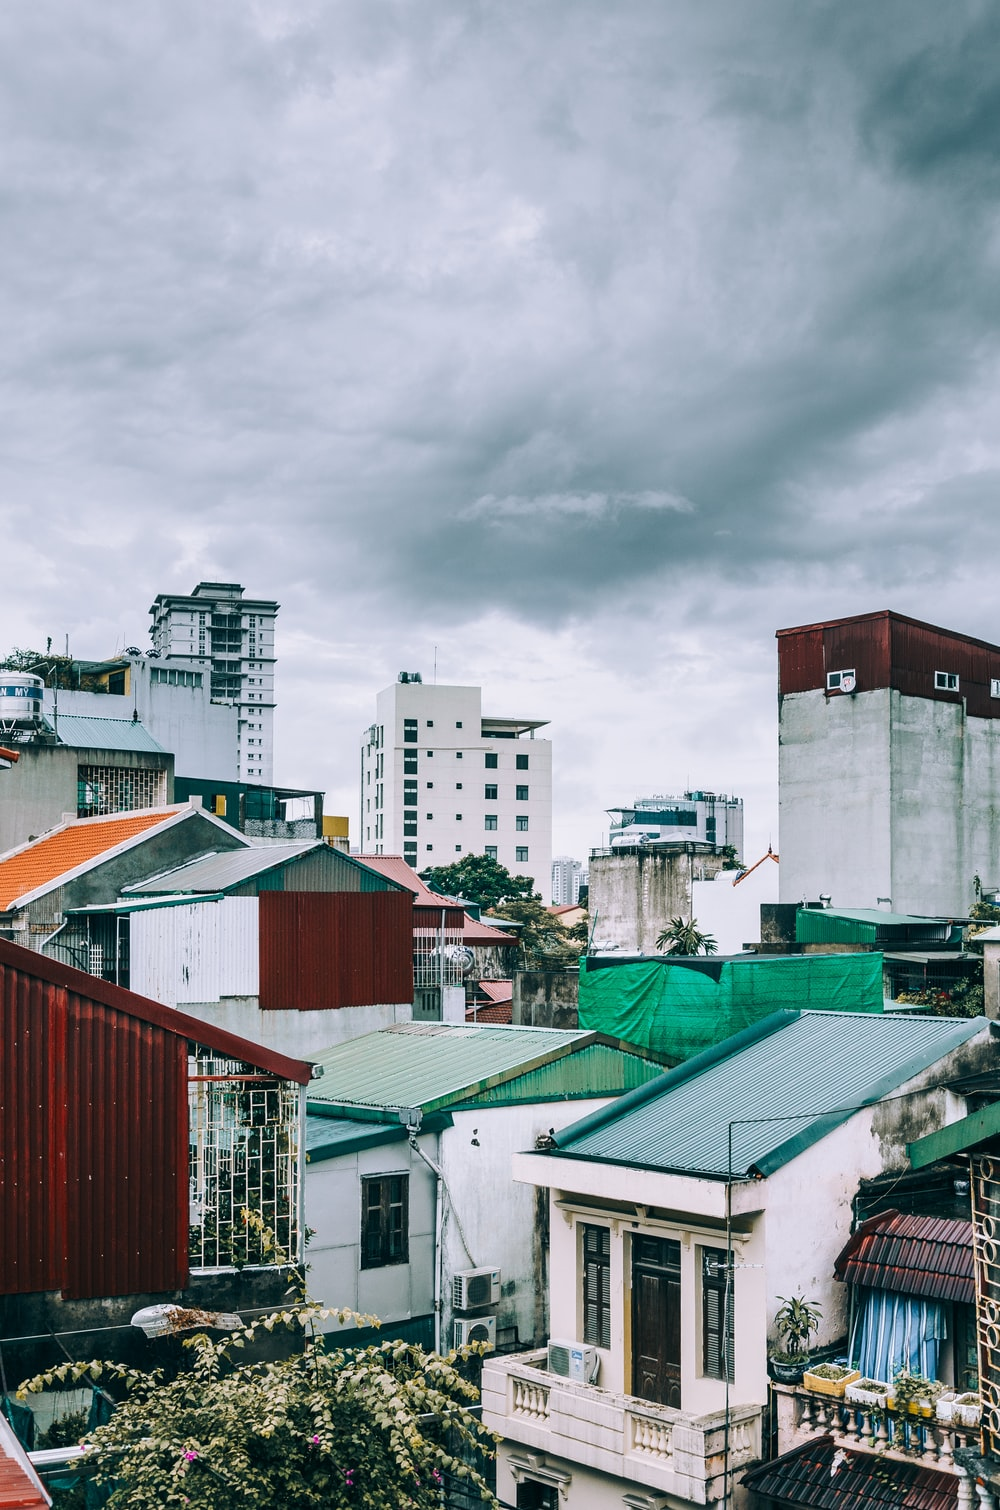 white and gray concrete mid-rise buildings under gray clouds